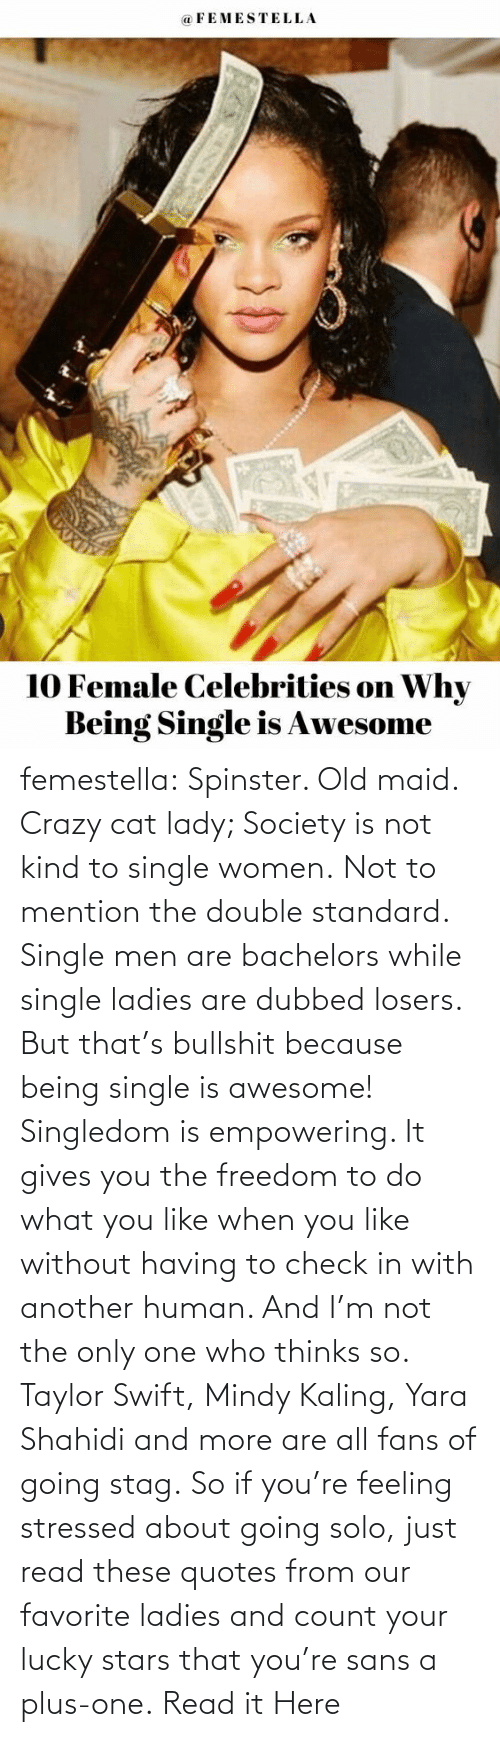 Empowering: femestella: Spinster. Old maid. Crazy cat lady; Society is not kind to single women. Not to mention the double standard. Single men are bachelors while single ladies are dubbed losers. But that's bullshit because being single is awesome! Singledom is empowering. It gives you the freedom to do what you like when you like without having to check in with another human. And I'm not the only one who thinks so. Taylor Swift, Mindy Kaling, Yara Shahidi and more are all fans of going stag. So if you're feeling stressed about going solo, just read these quotes from our favorite ladies and count your lucky stars that you're sans a plus-one. Read it Here